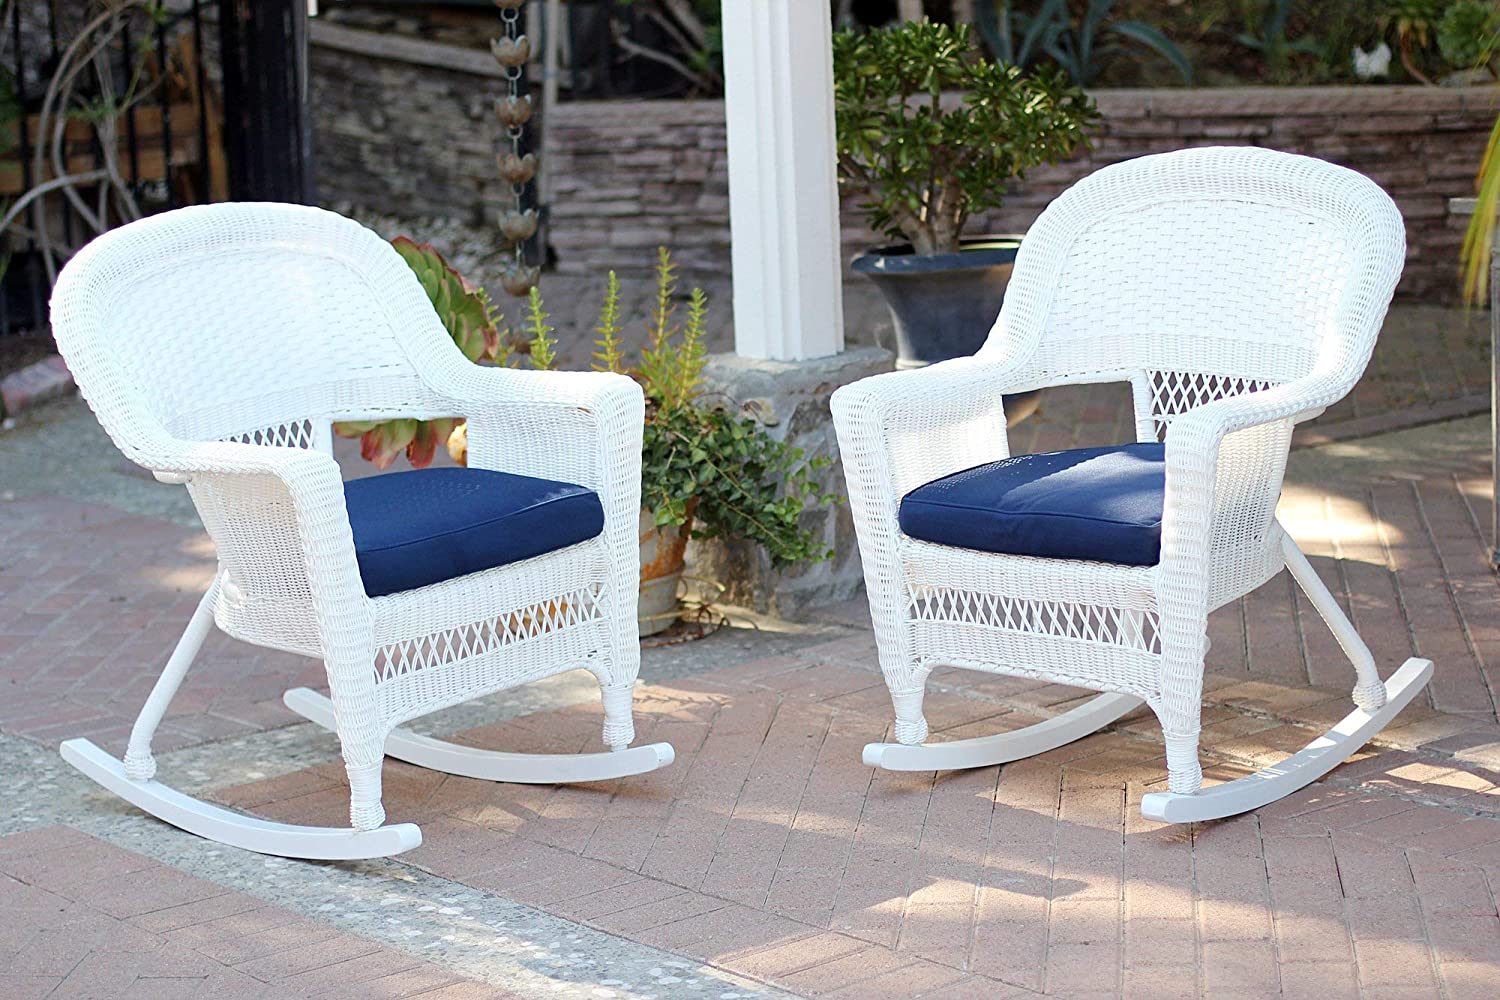 Jeco Rocker Wicker Chair with Blue Cushion, Set of 2, White